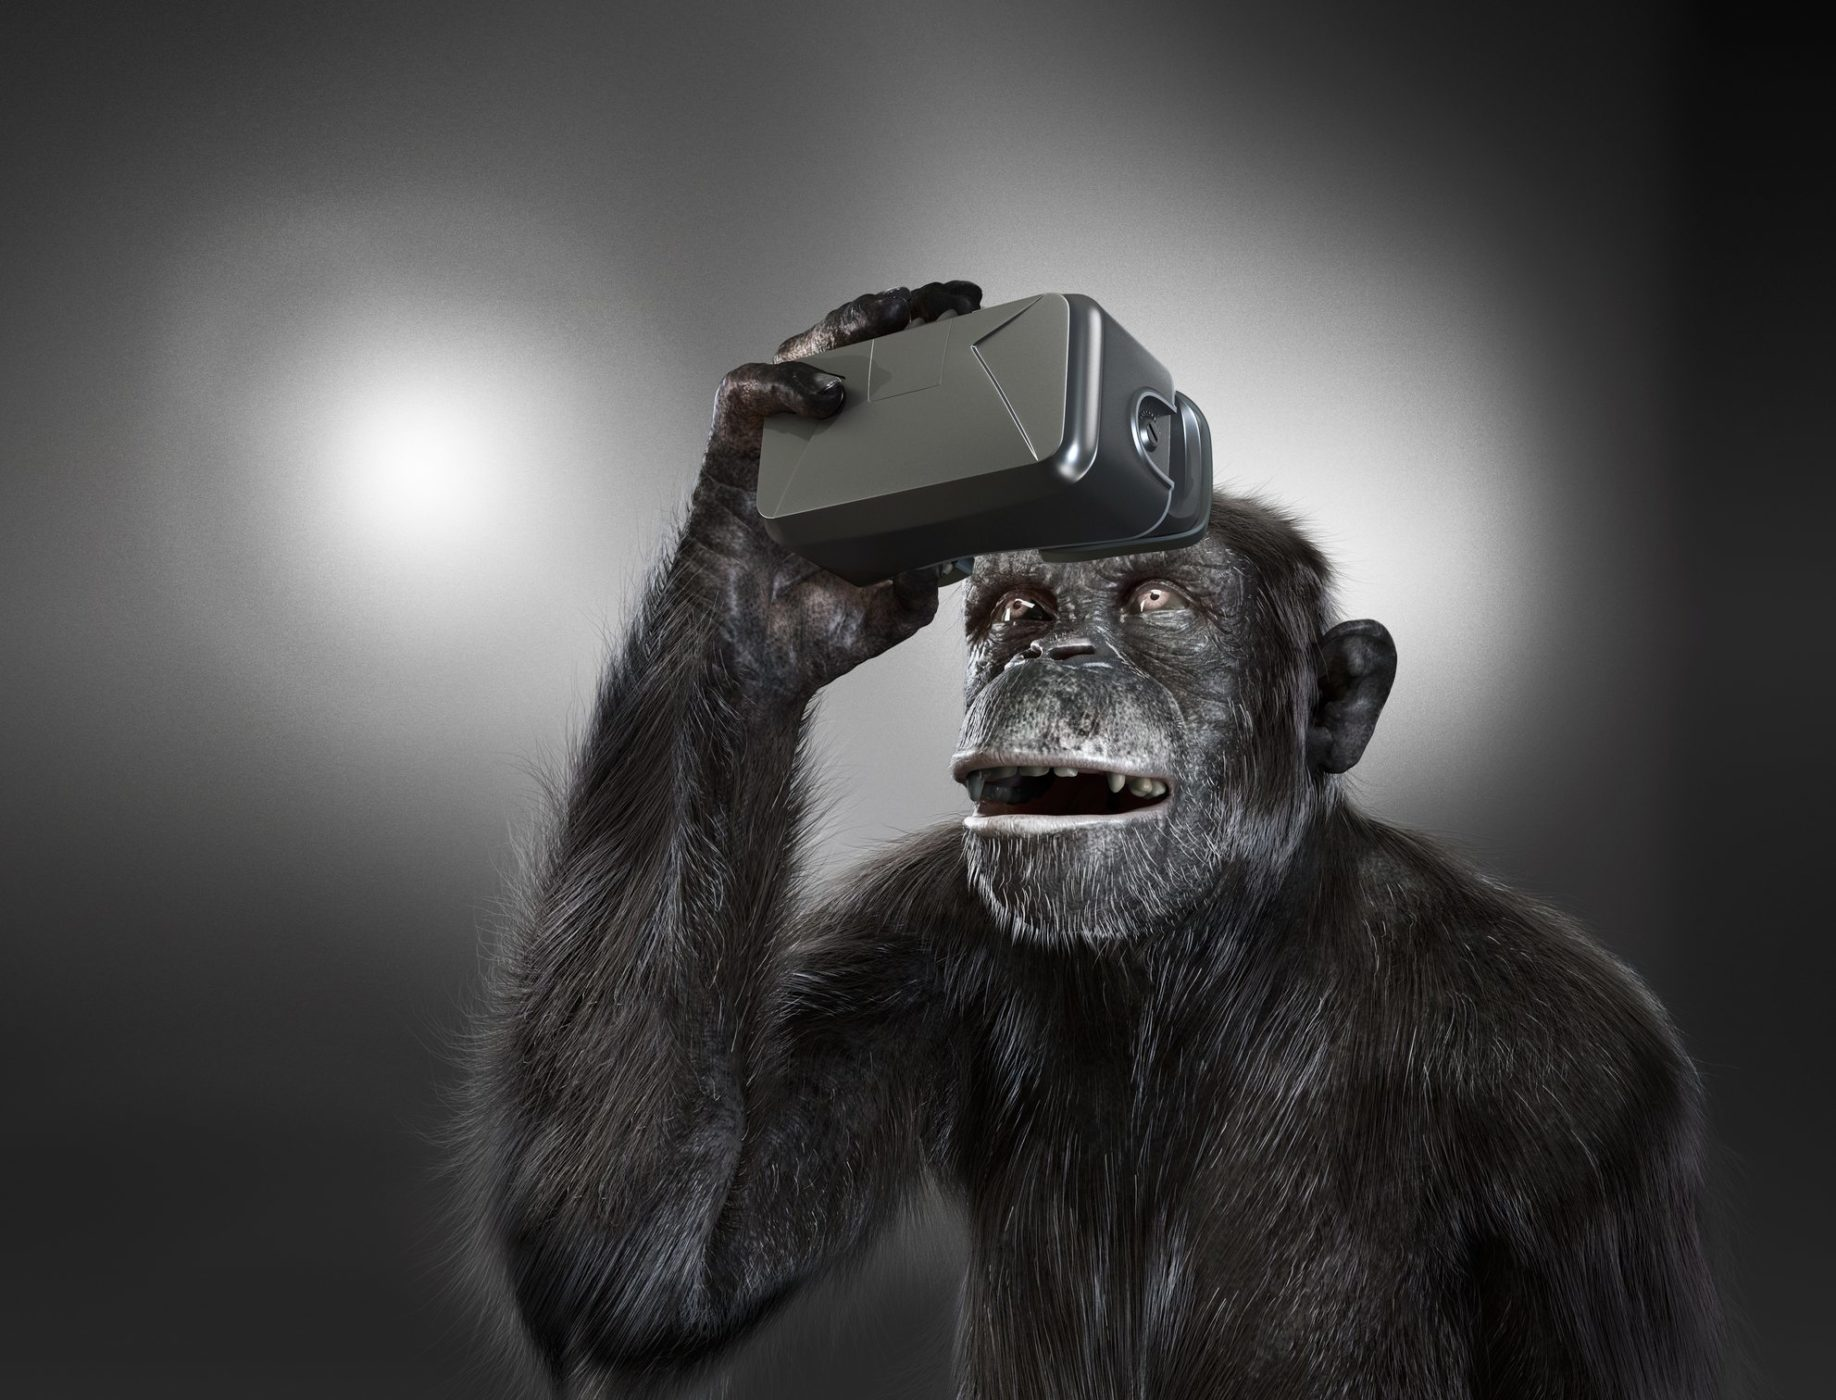 Chimpanzee with VR headset